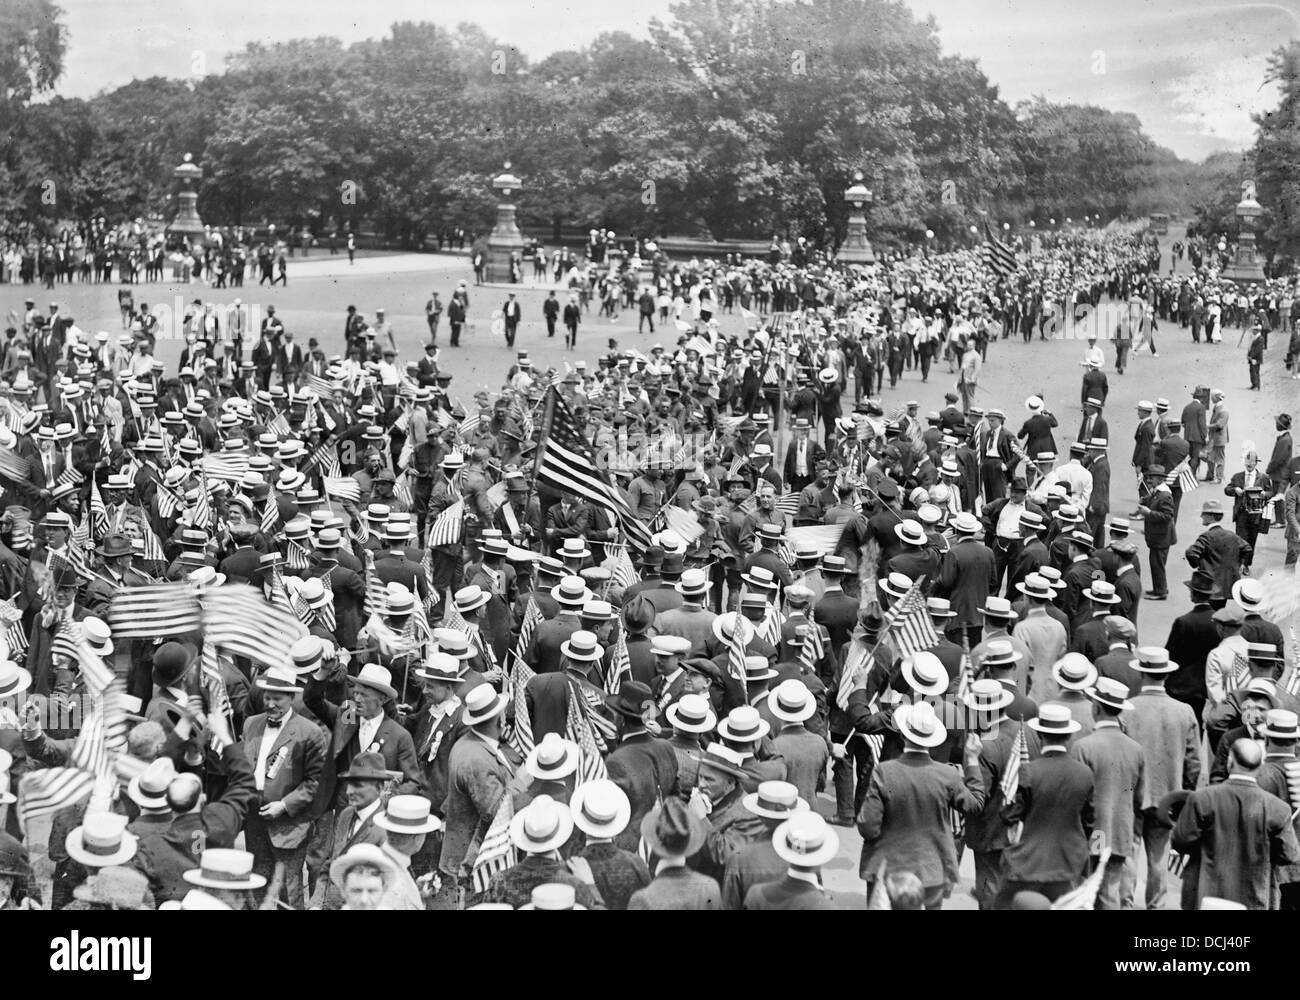 American Federation of Labor, Prohibition demonstration, June 14, 1919 - Stock Image